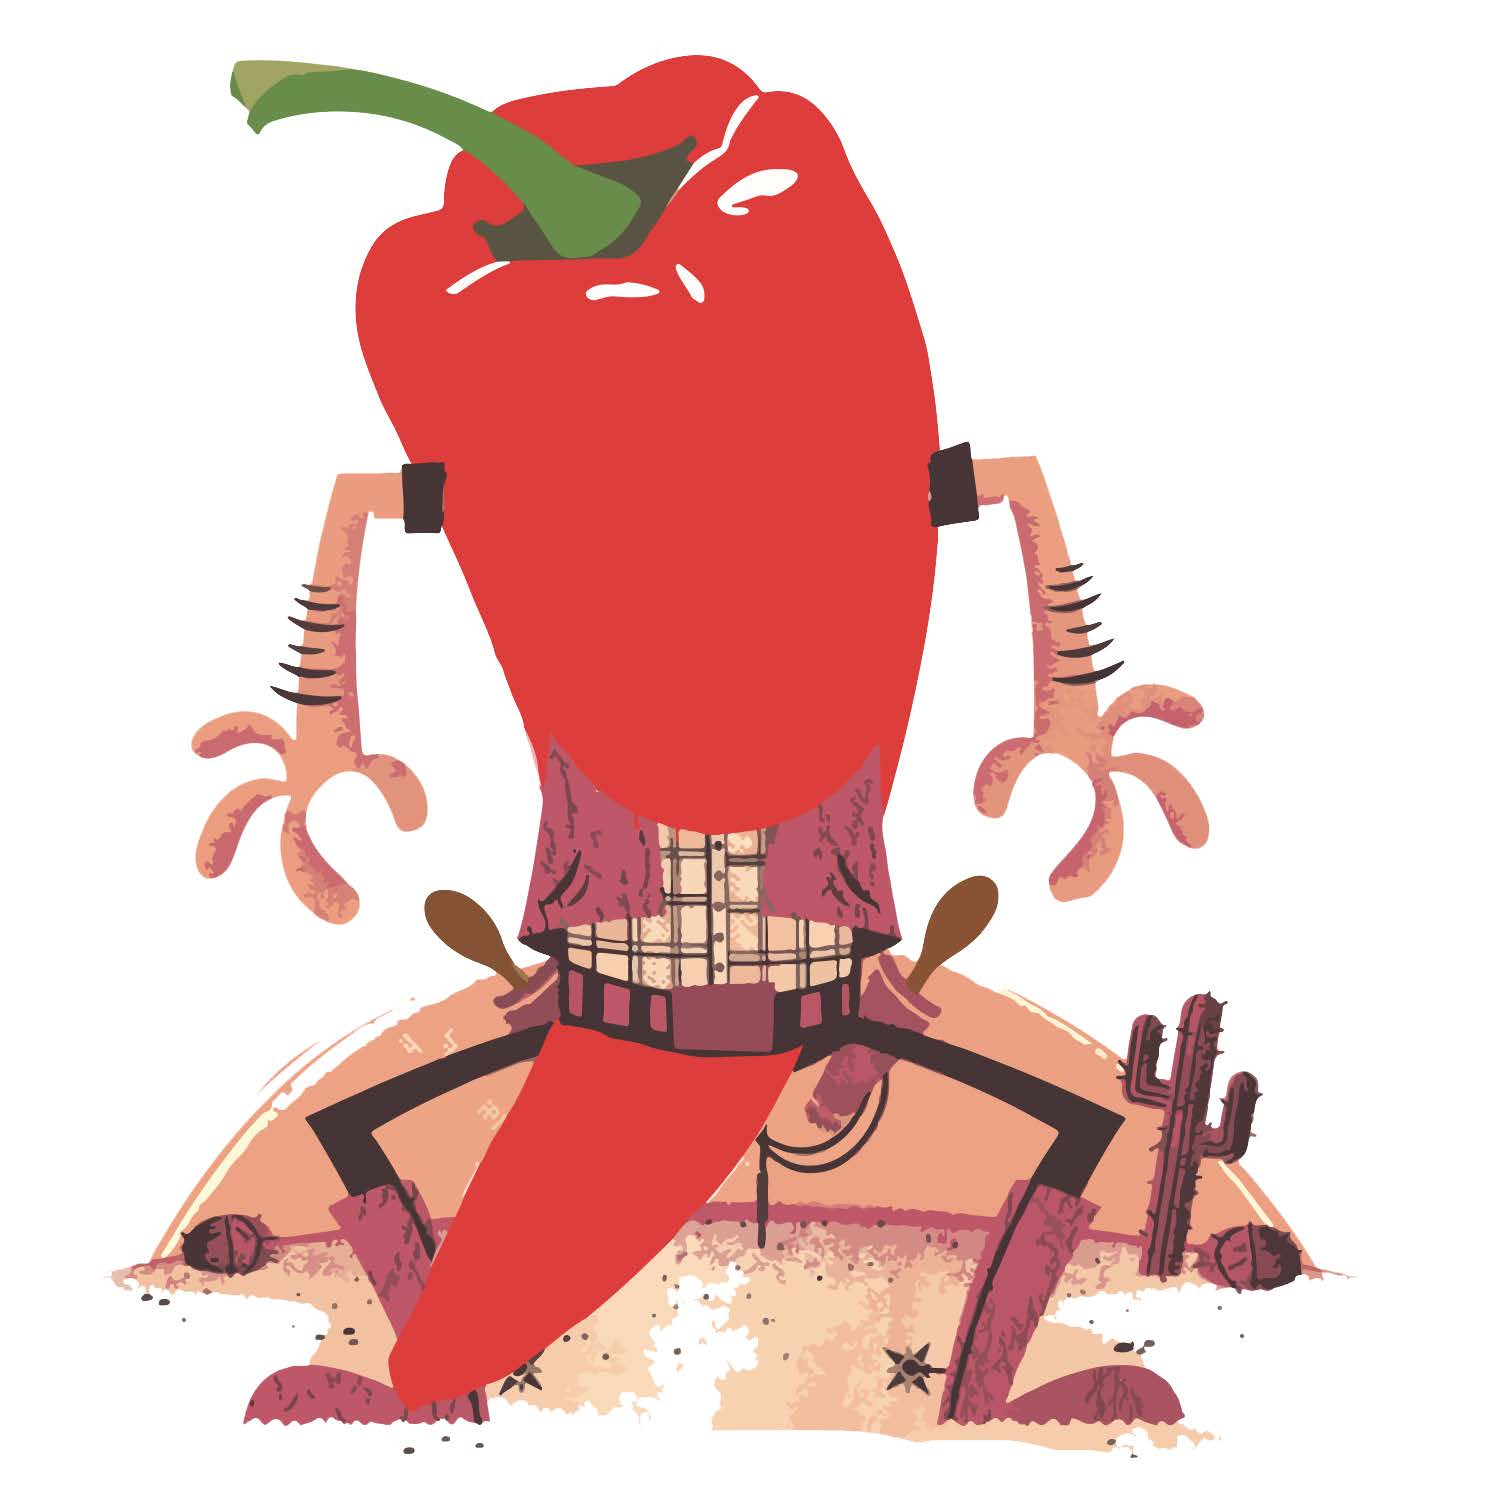 Pepper clipart chili cook off Fresh Annual 2nd Cook Queen